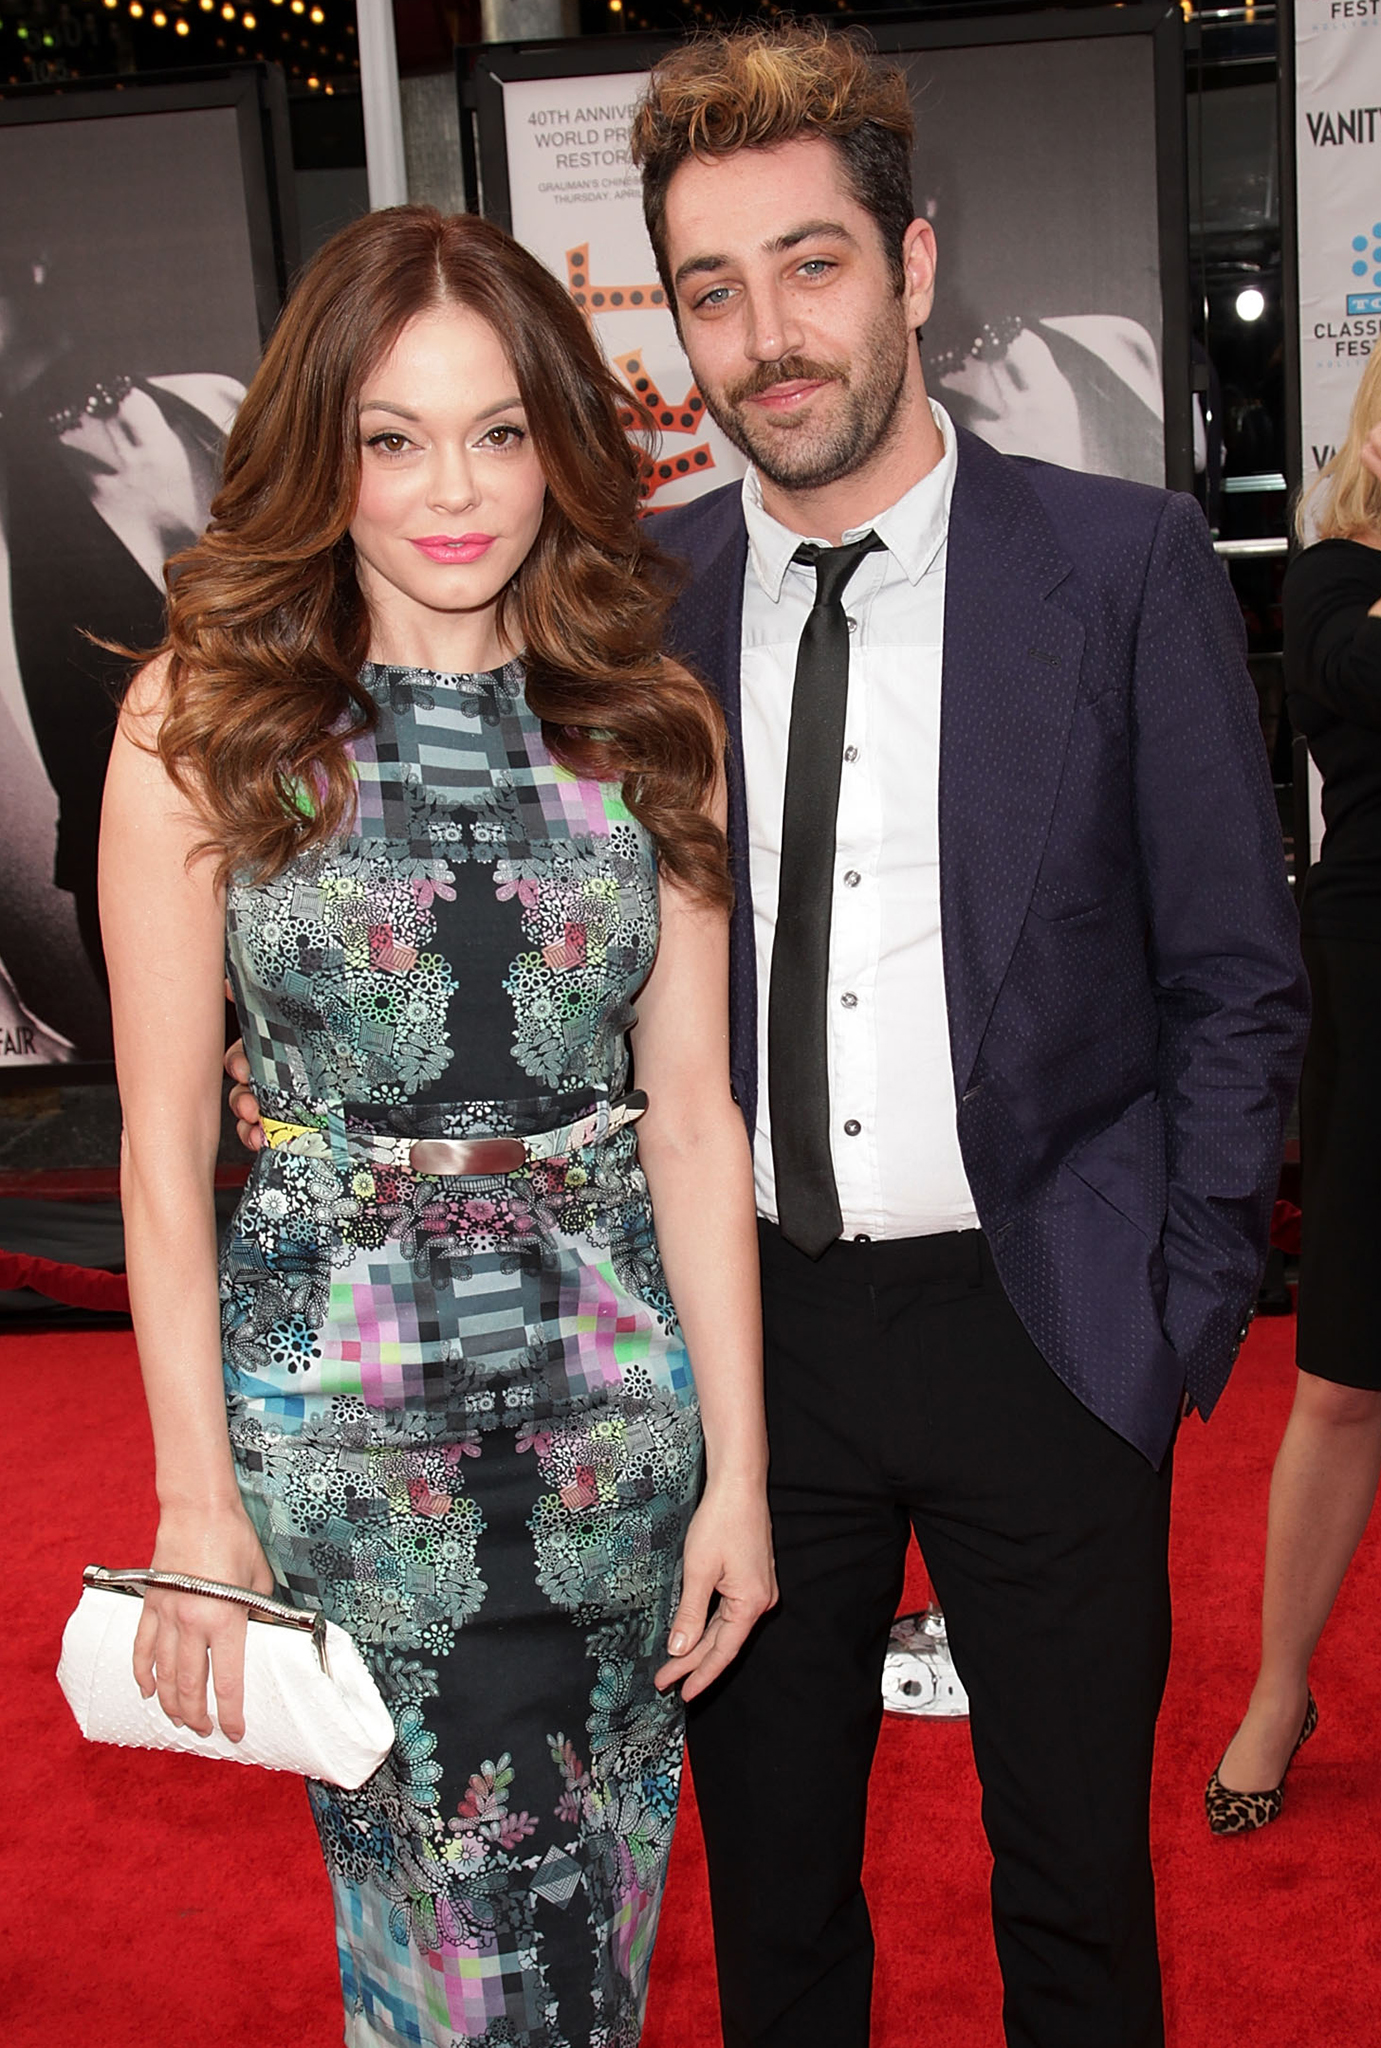 Rose McGowan and Davey Detail (Getty Images)